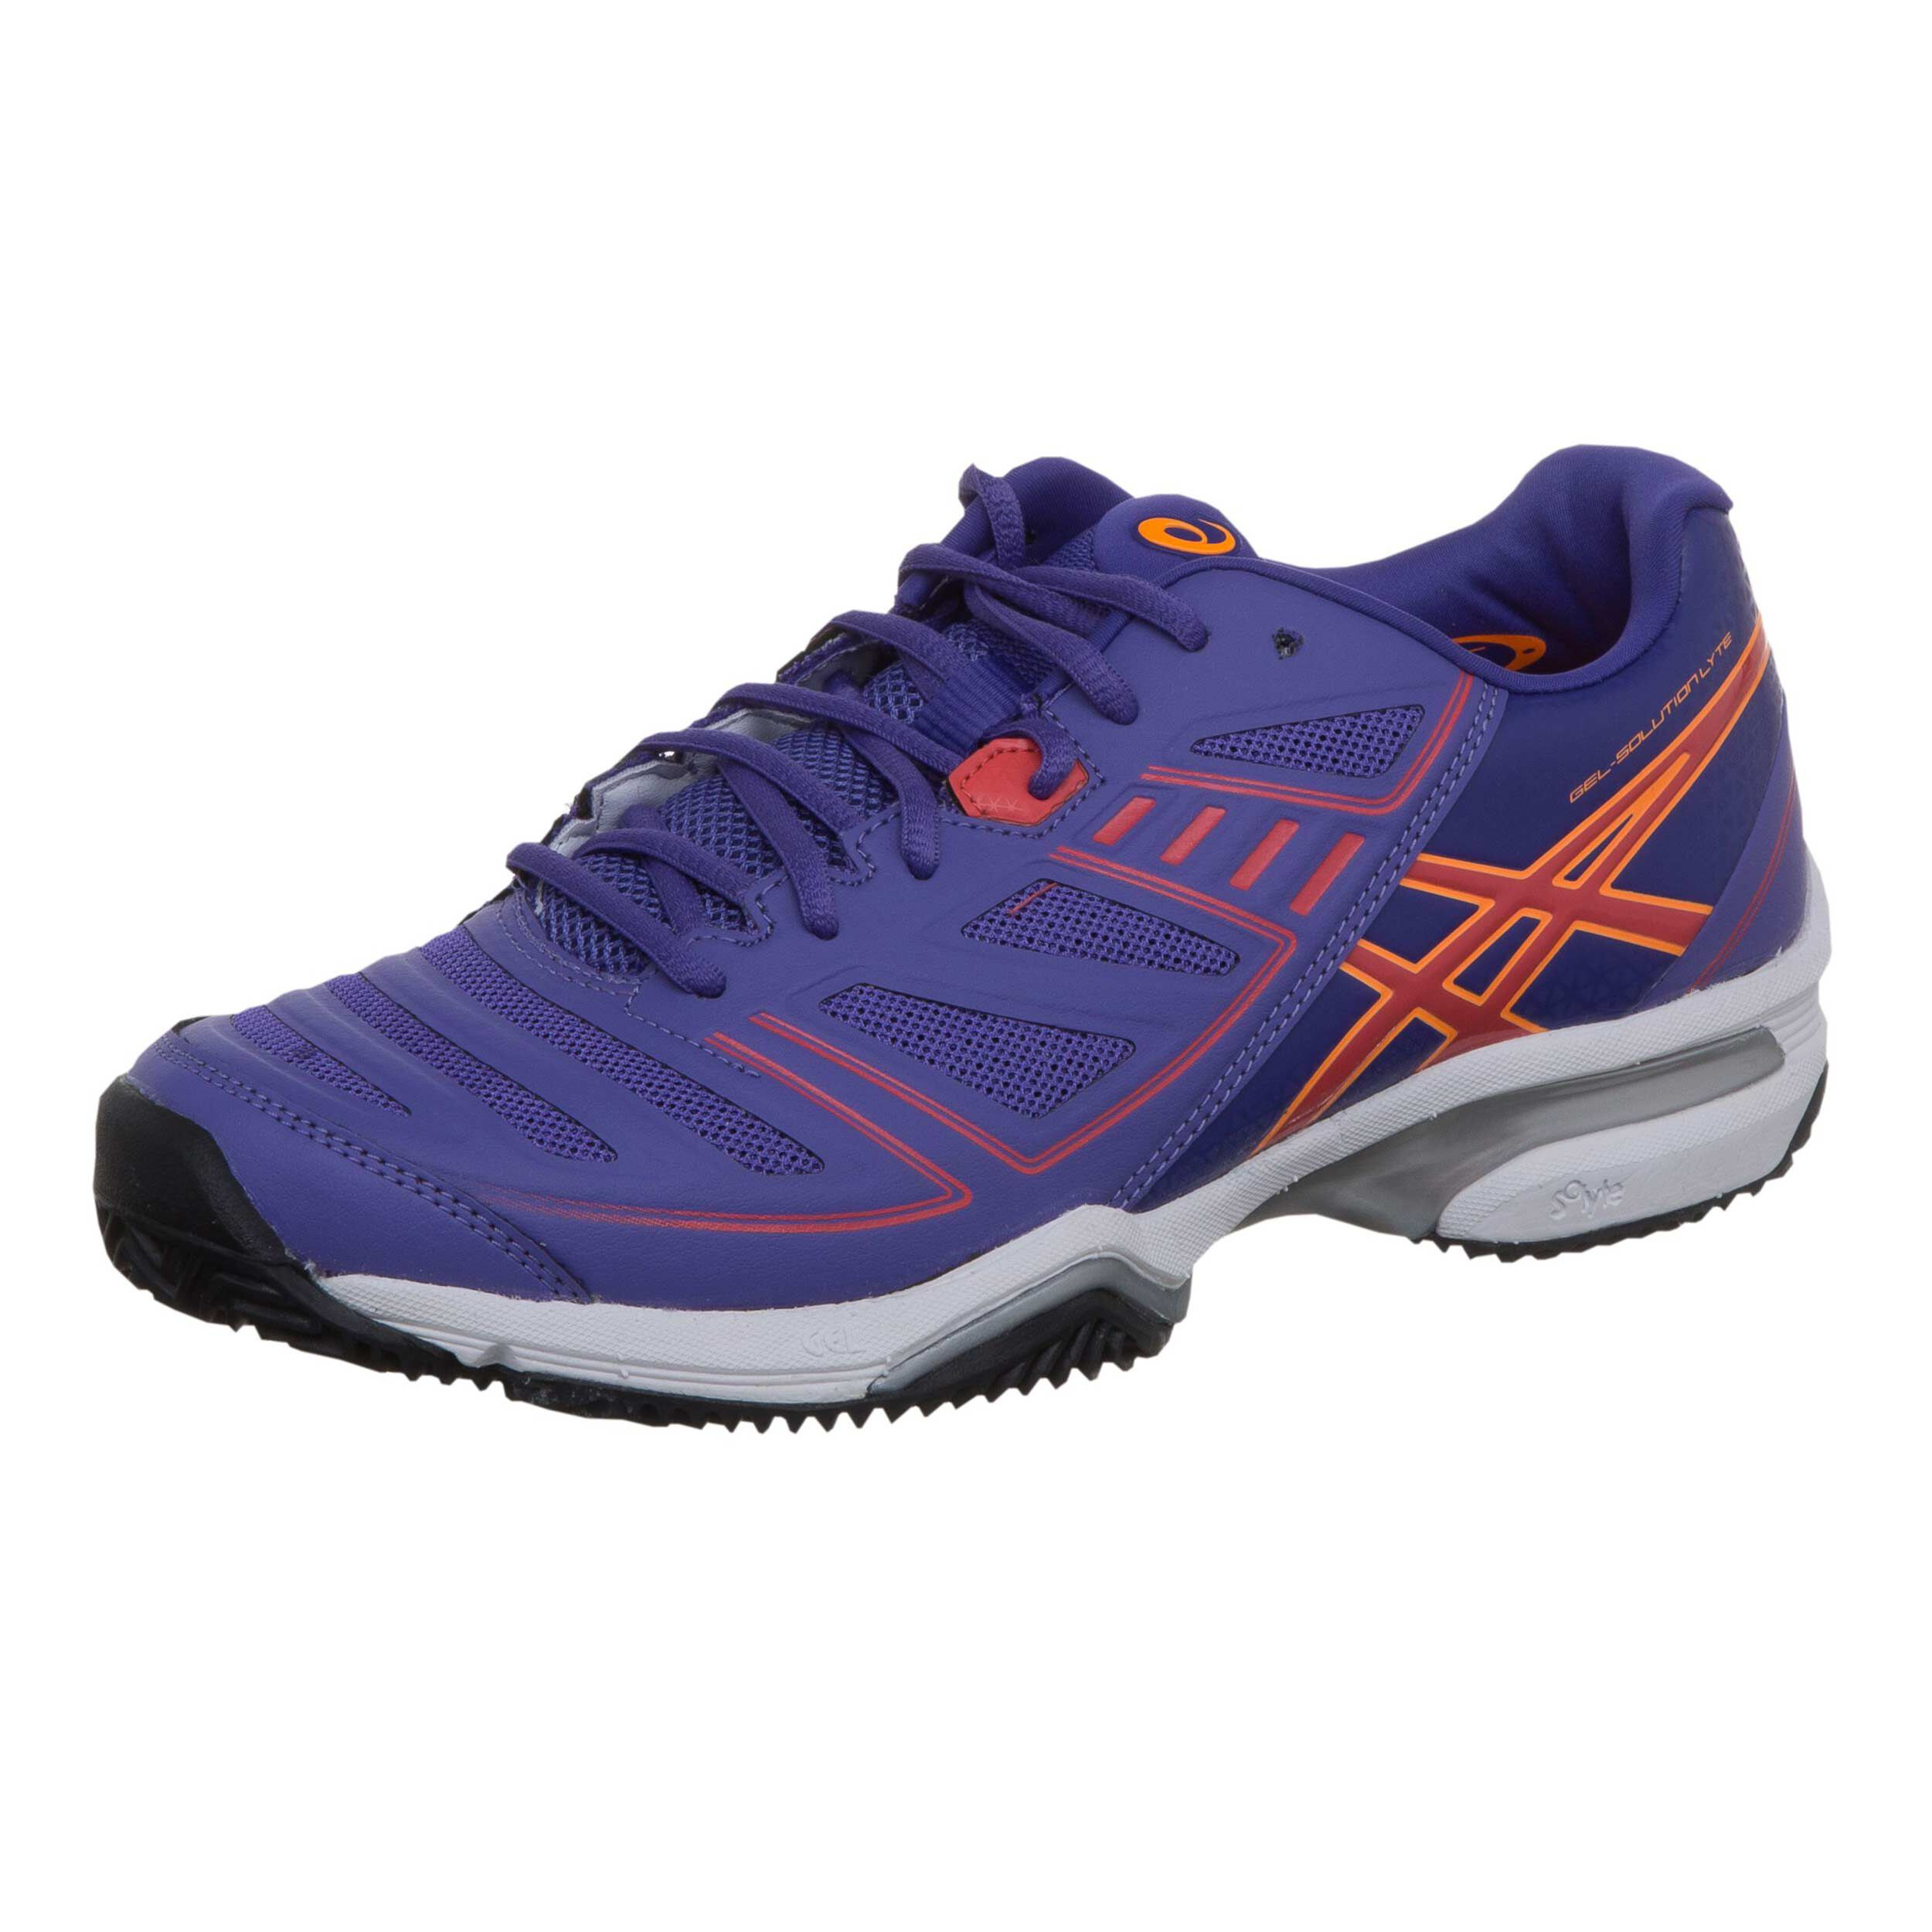 Asics Gel Solution Lyte 2 Clay Gravelschoen Dames Paars